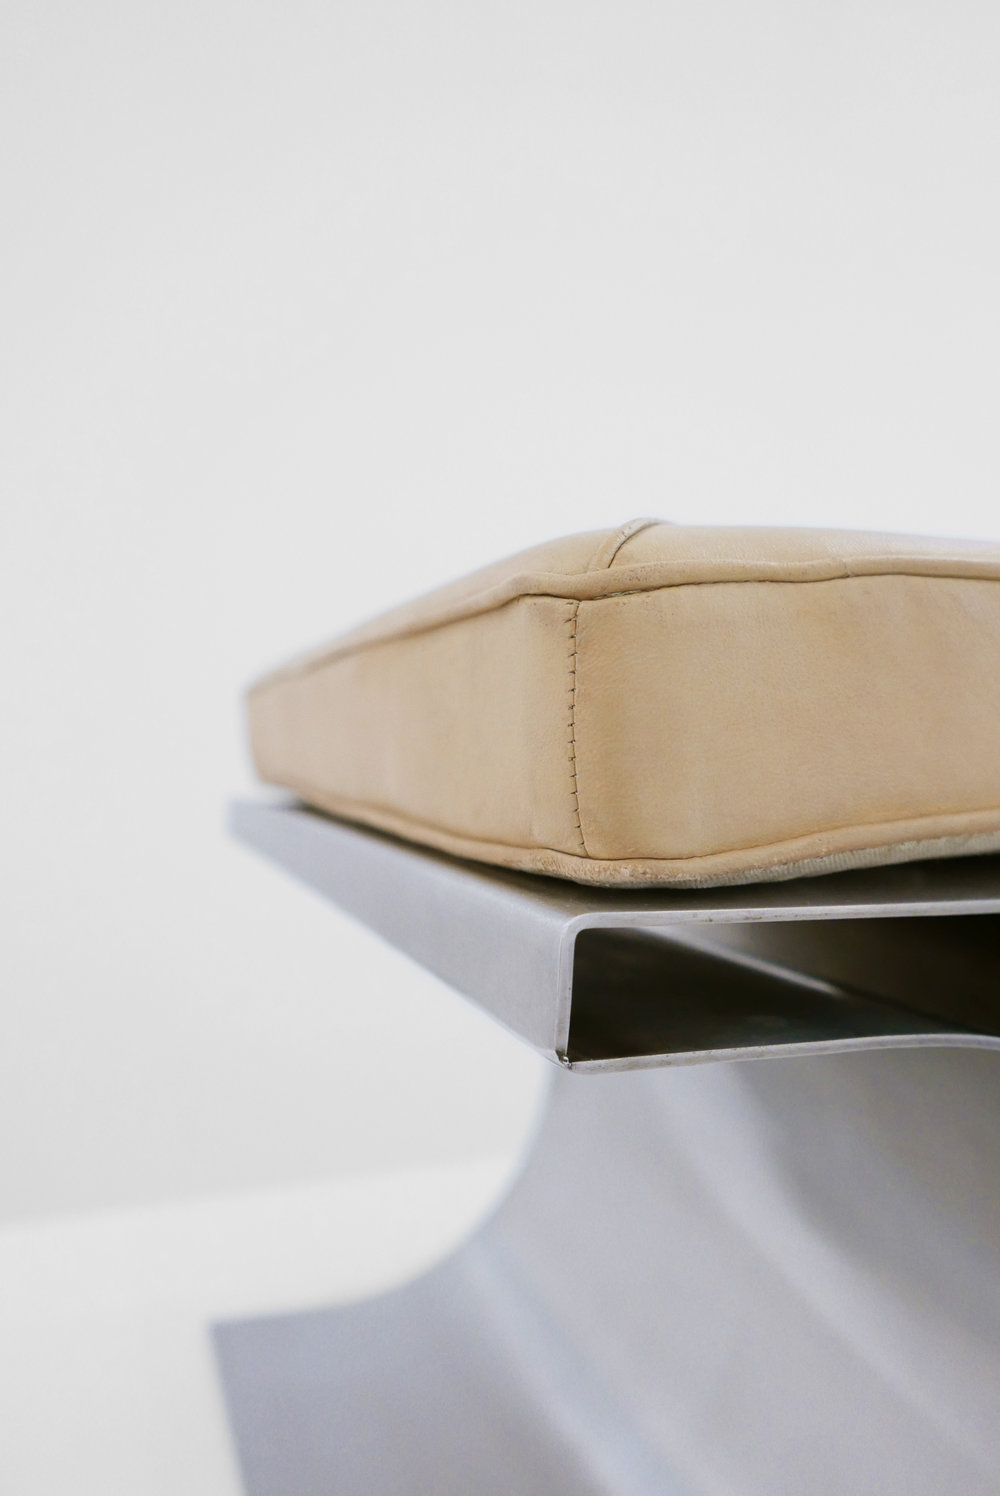 7. Micel Boyer, 'X' Stool, c. 1968, stainless steel and leather upholstery, 16H x 19.75W x 19.75D inches.jpg